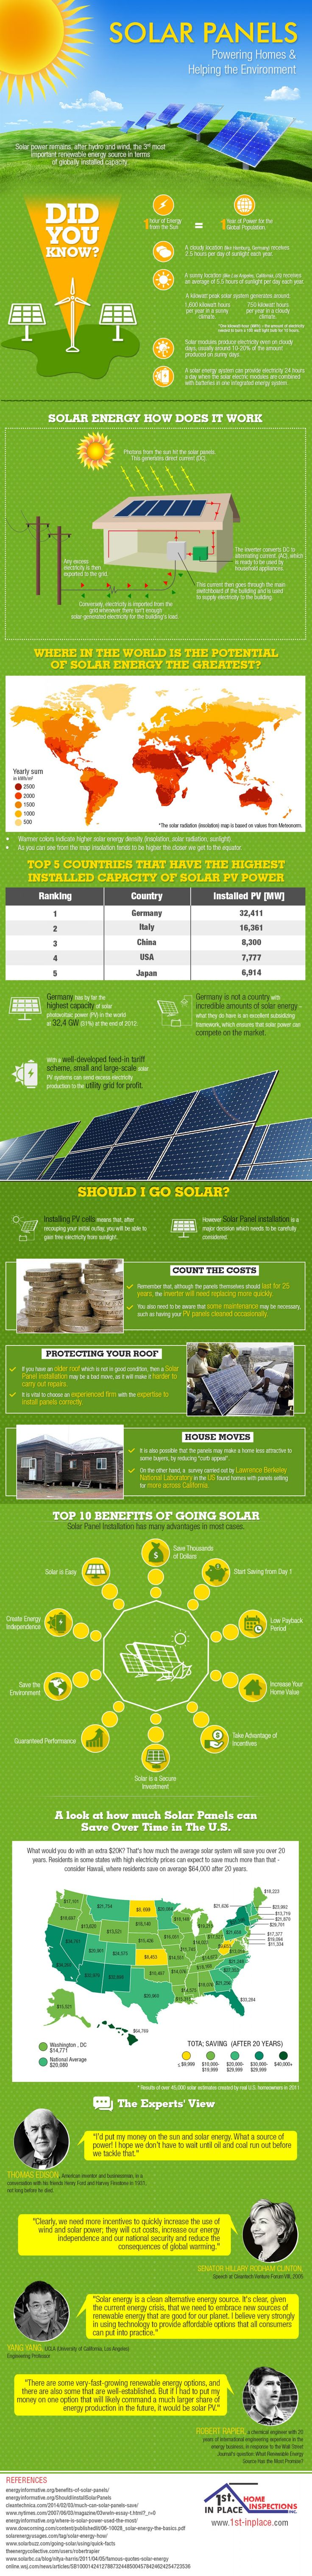 How #solarpanels power #homes and help the #environment #infographic